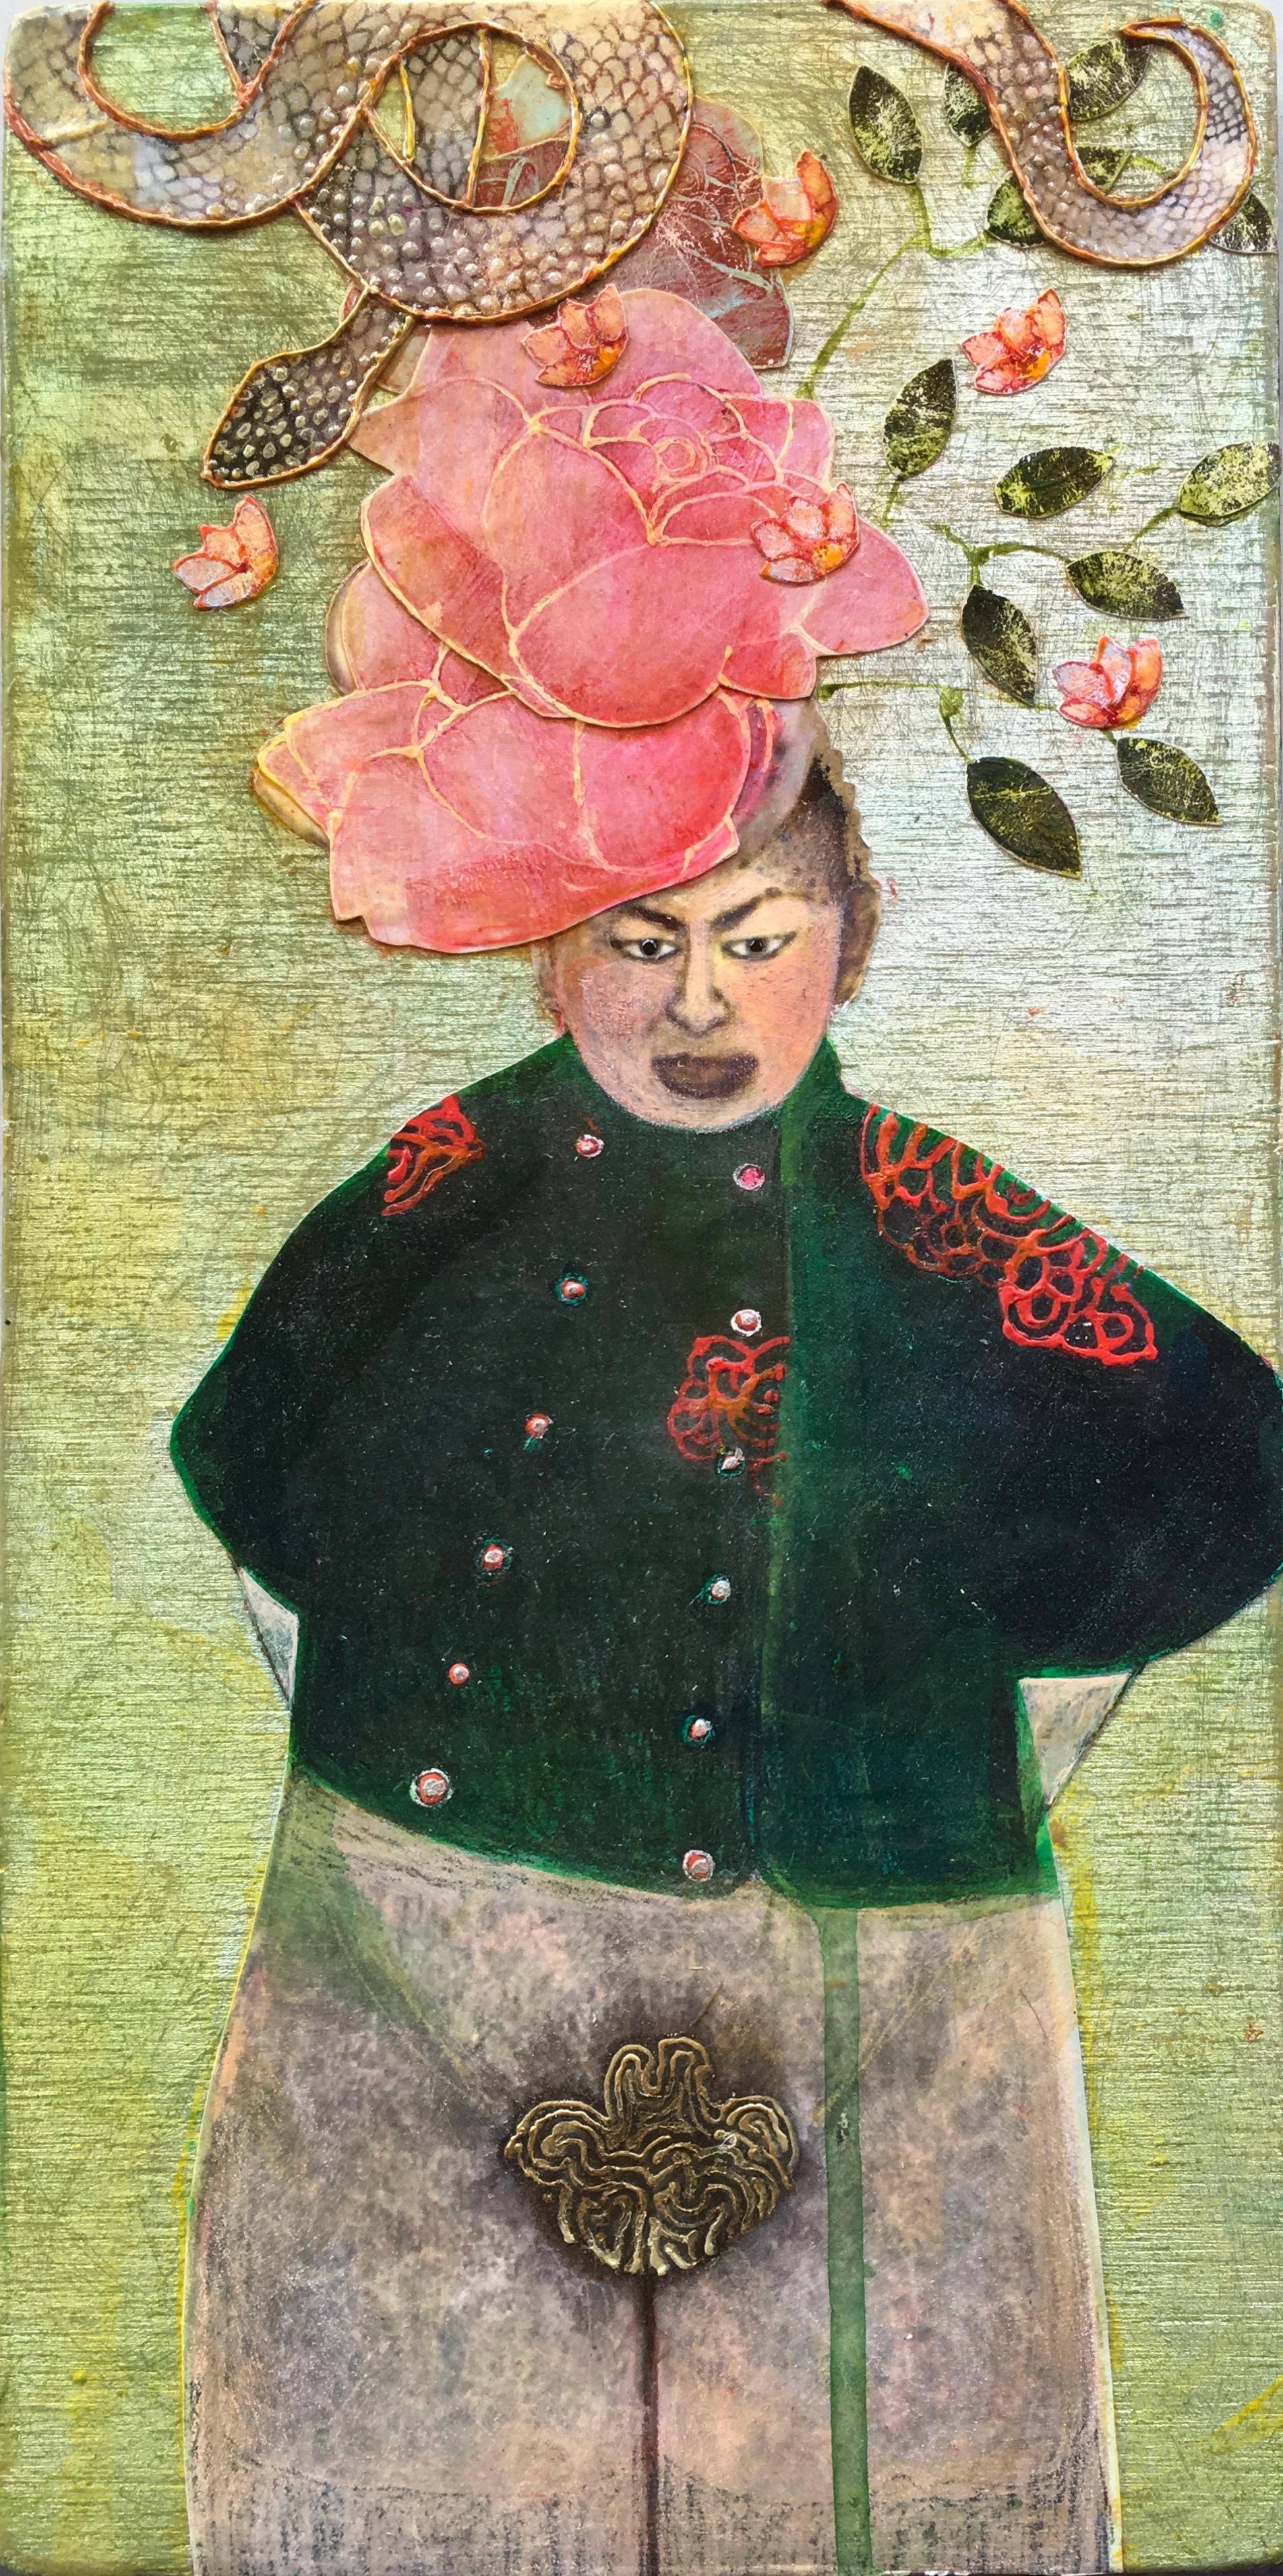 Comme des Garçons, portrait of woman in green jacket and pink floral headpiece